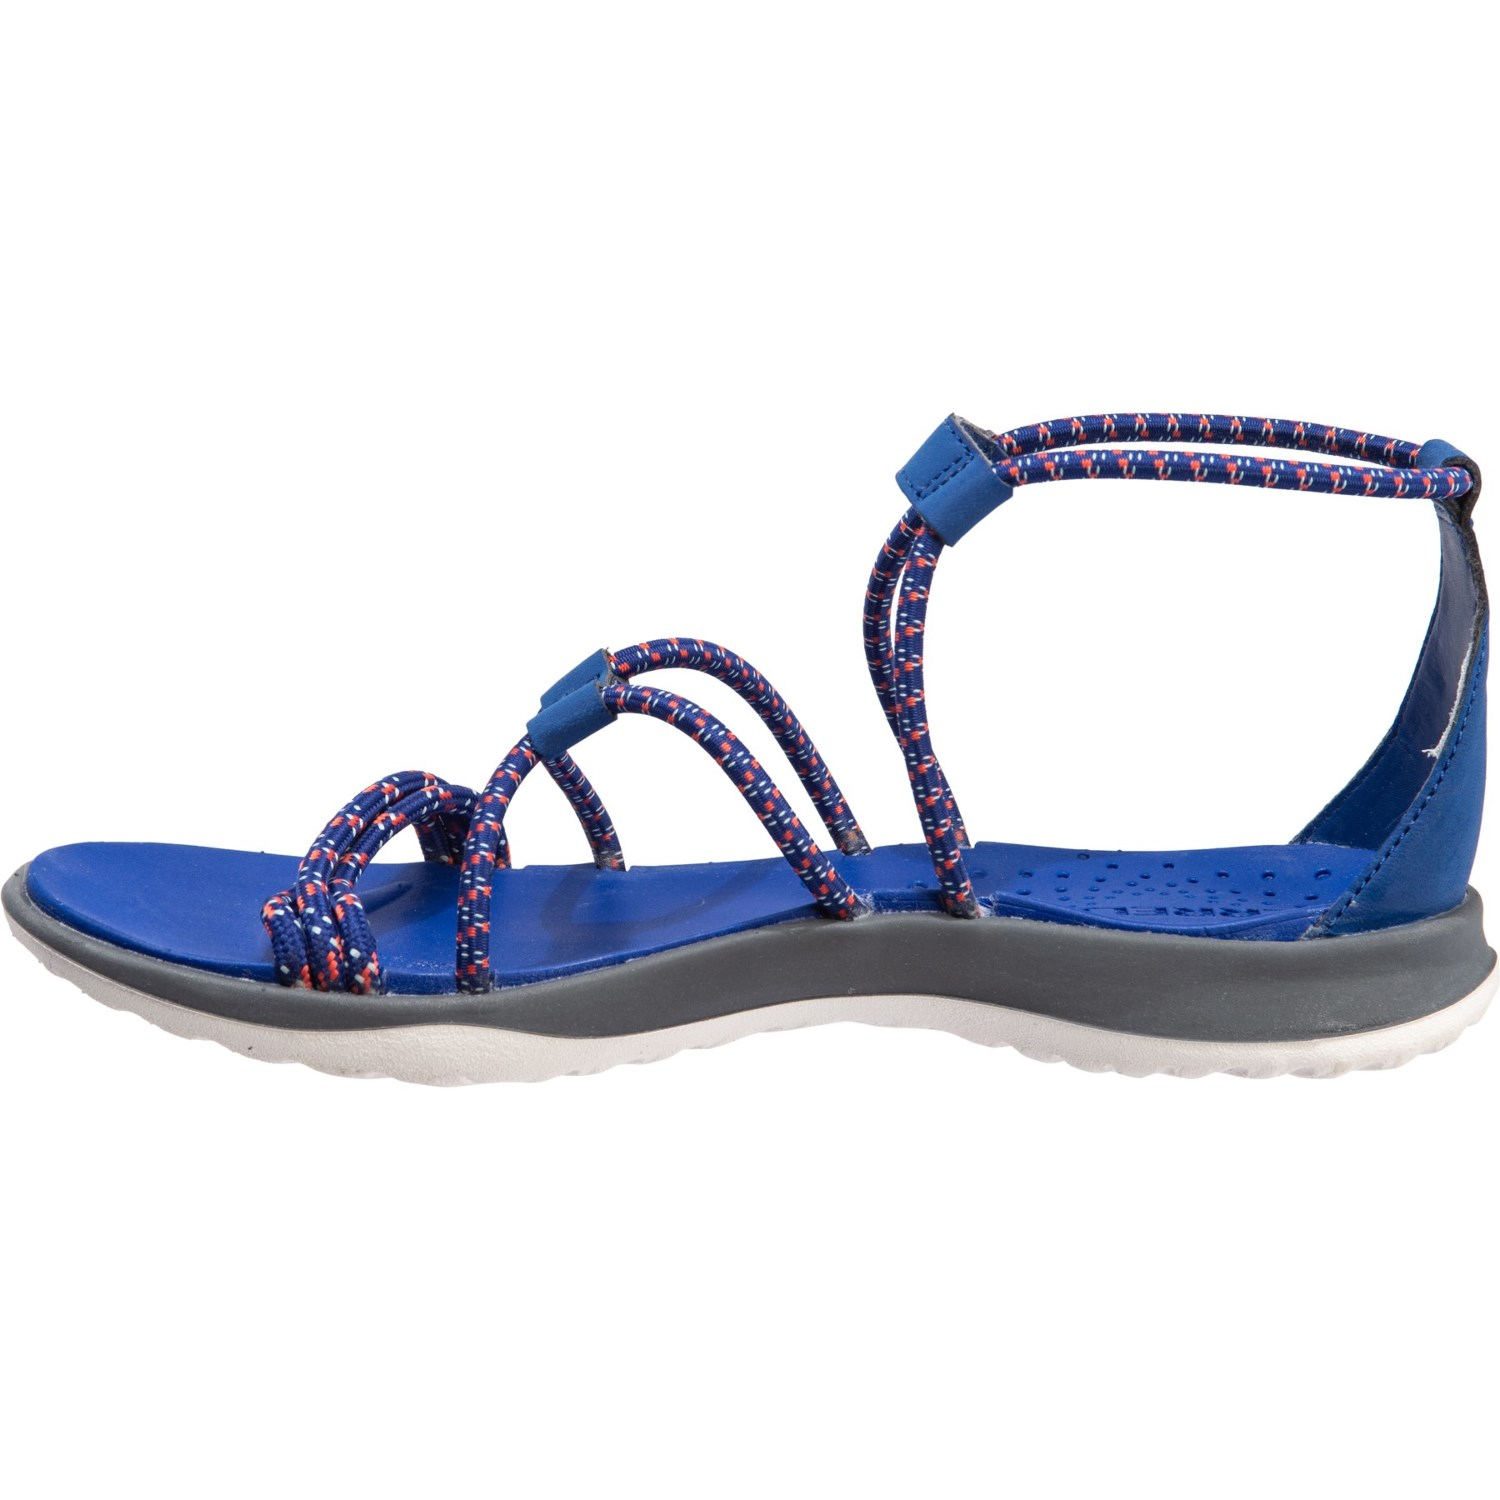 2ca49d2147 Merrell Sunstone Strappy Sandals (For Women) - Save 41%